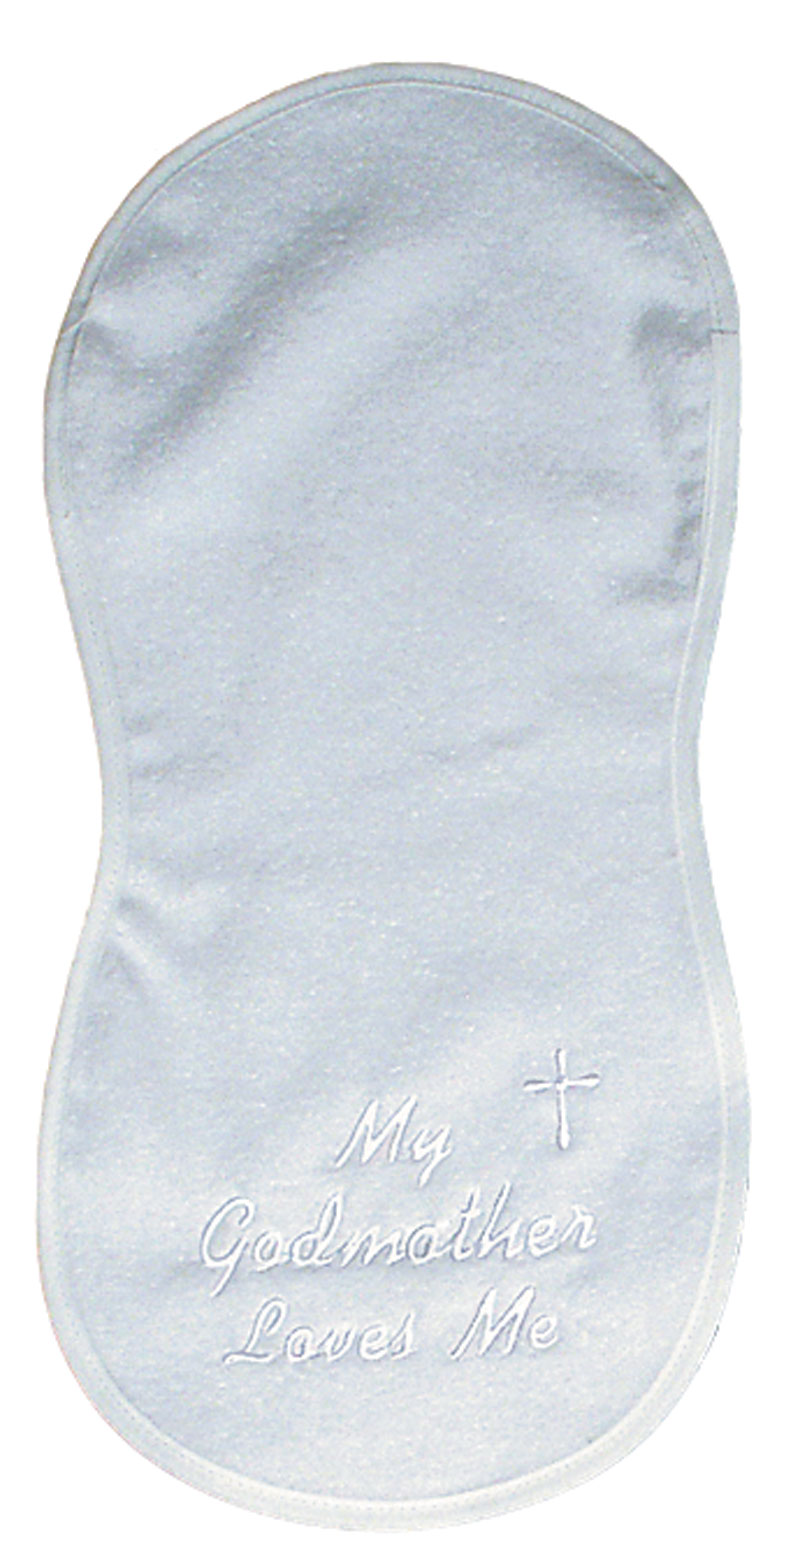 """My Godmother loves me"" Burp Cloth"